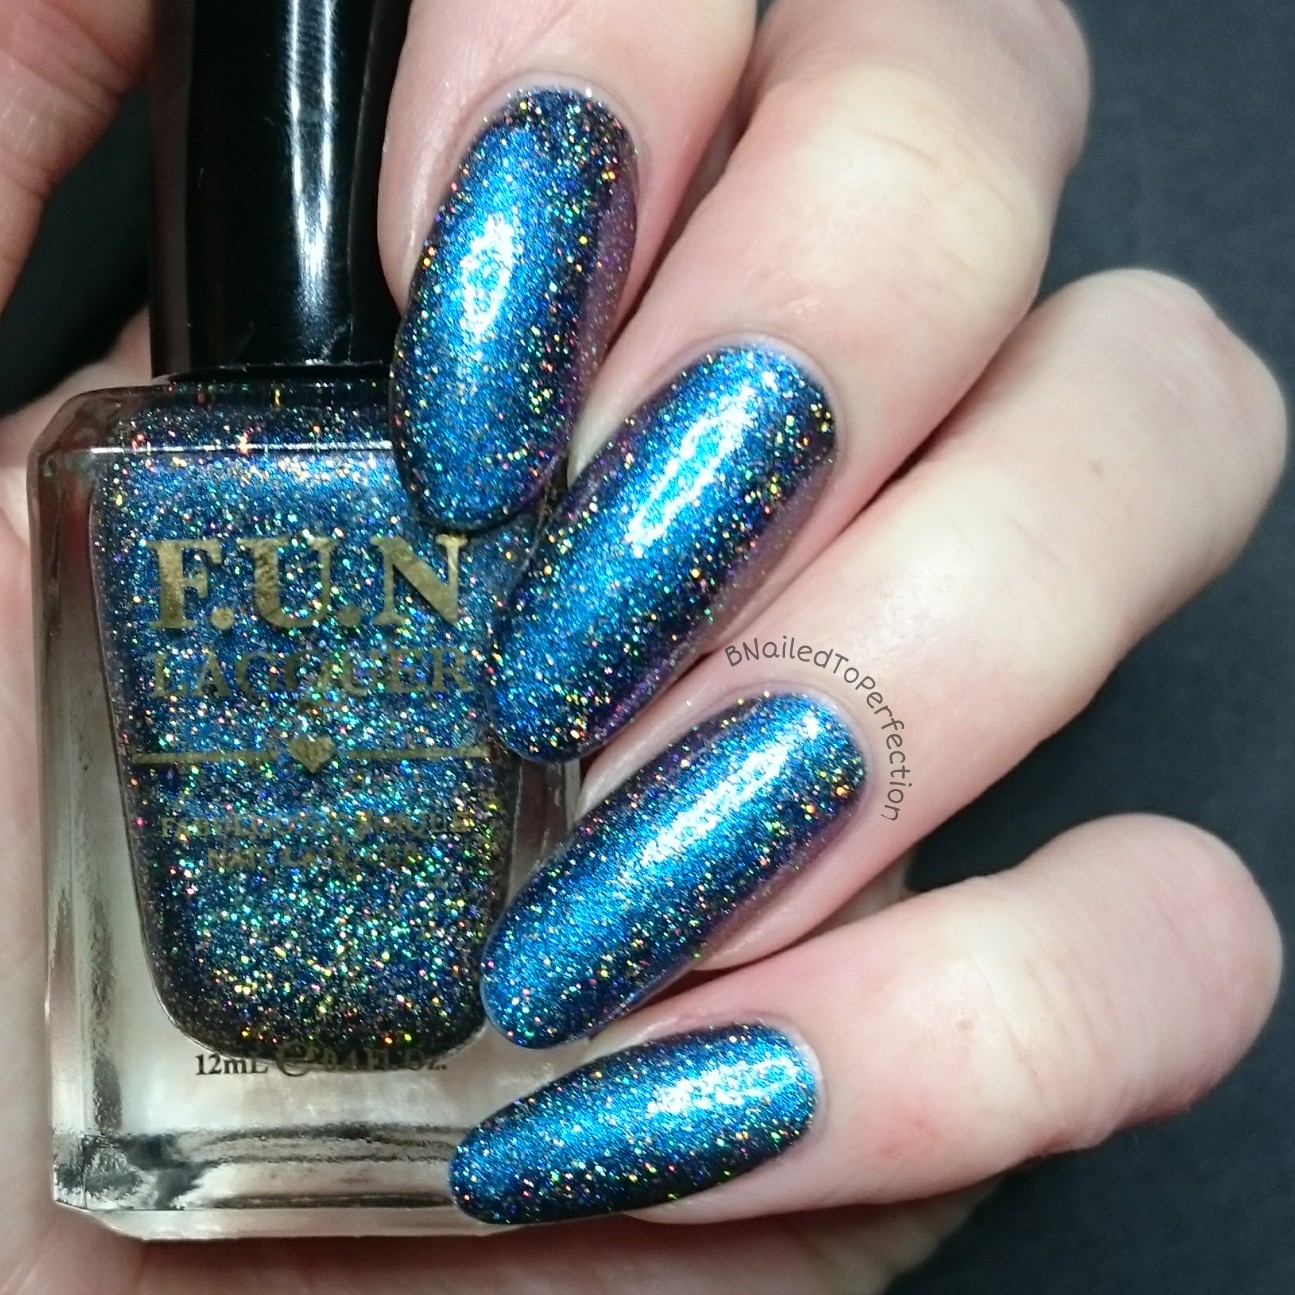 B Nailed To Perfection: F.U.N Lacquer - Frost(H)